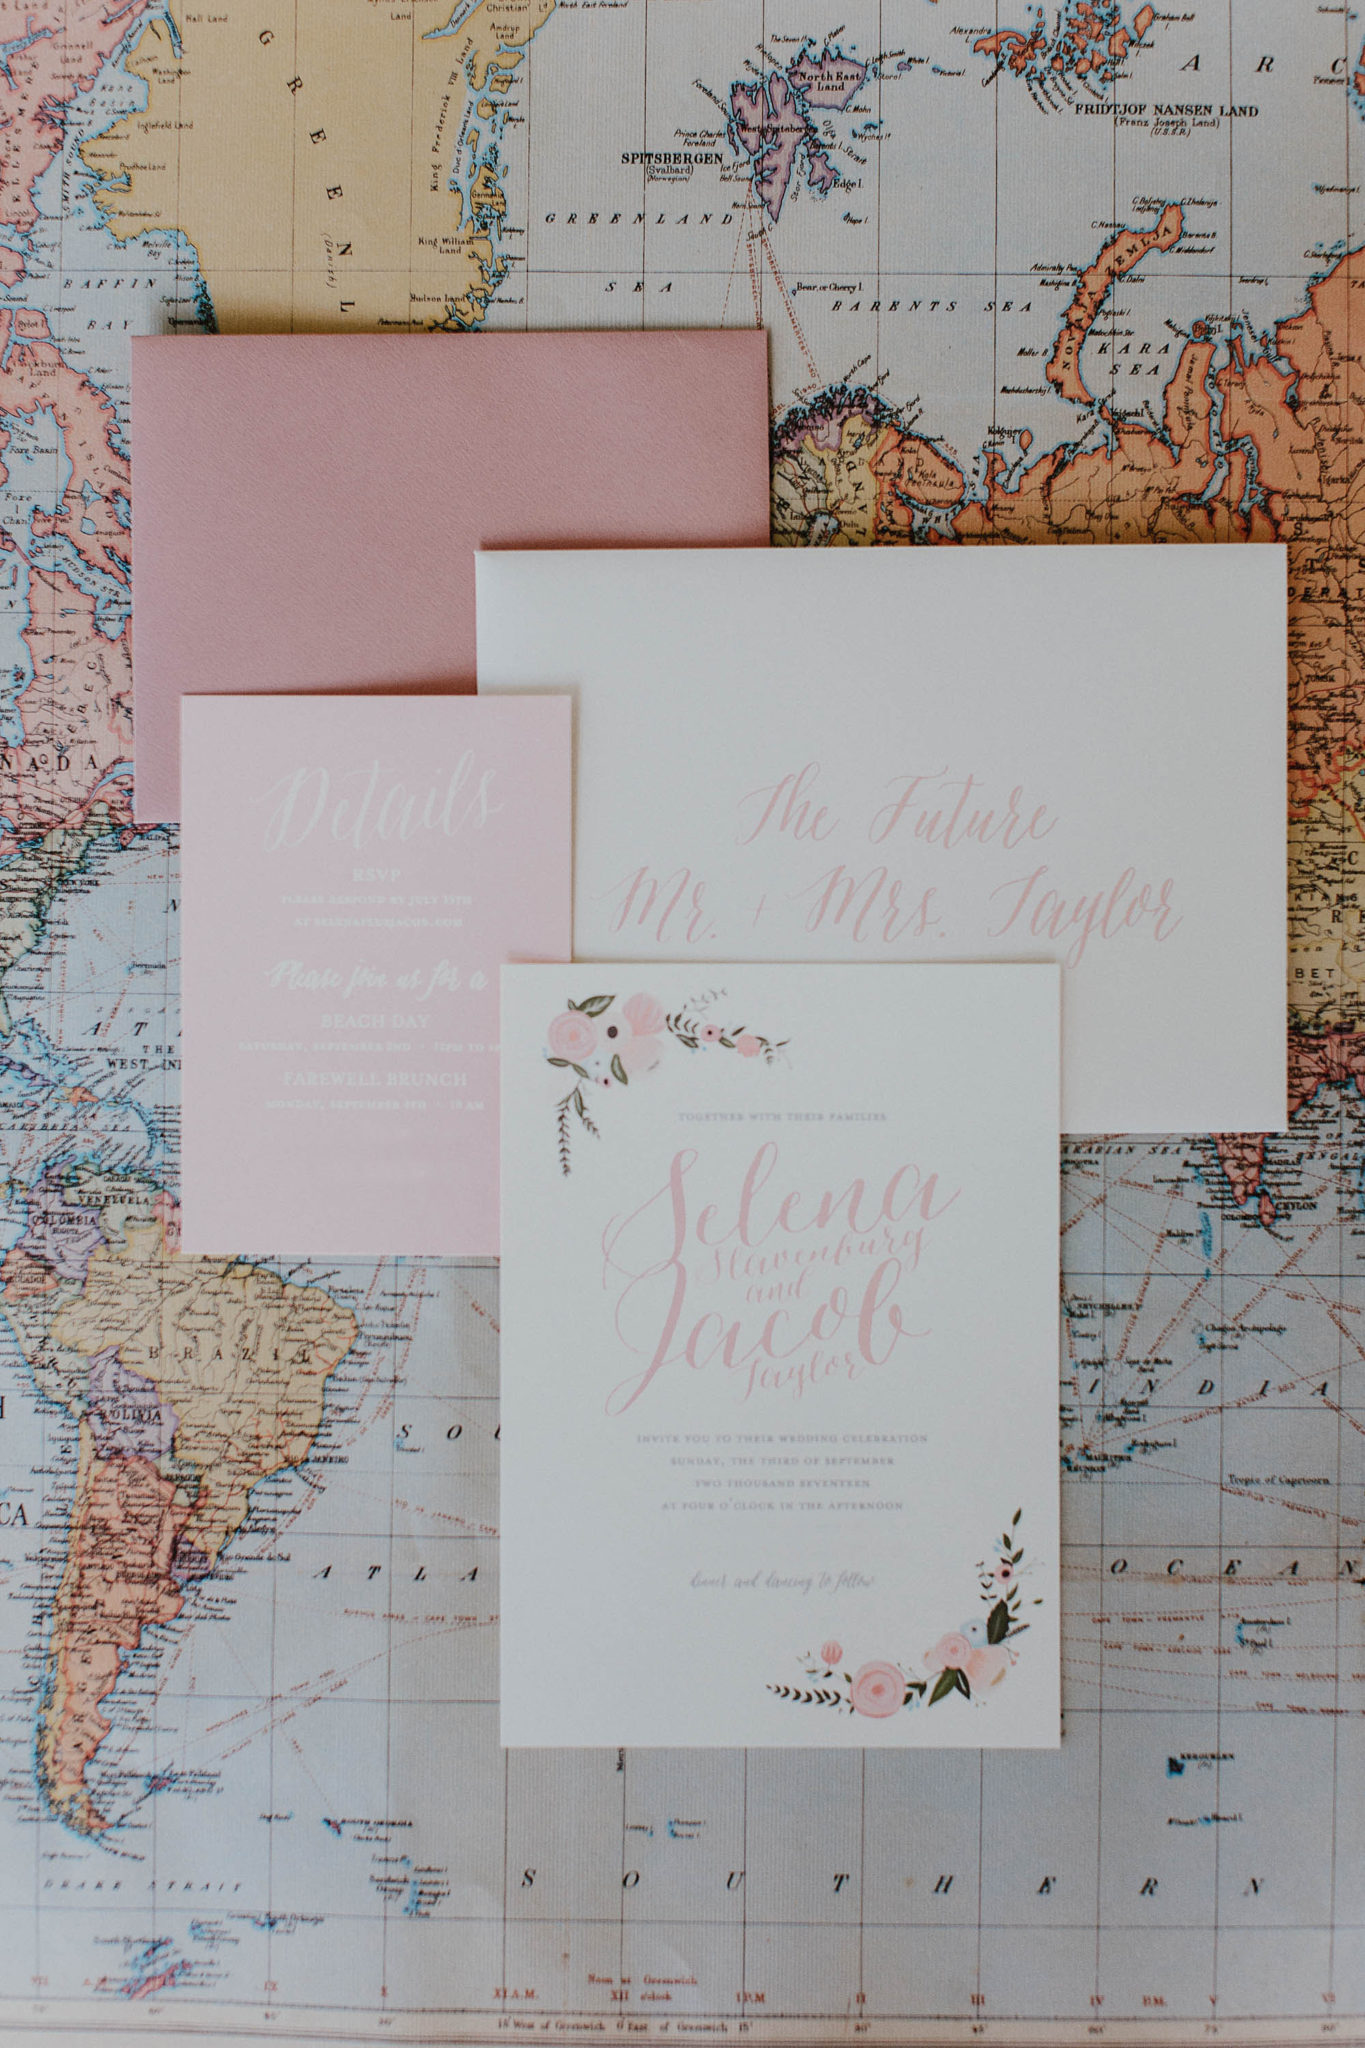 Travel themed wedding invitations invites with map background floral accents